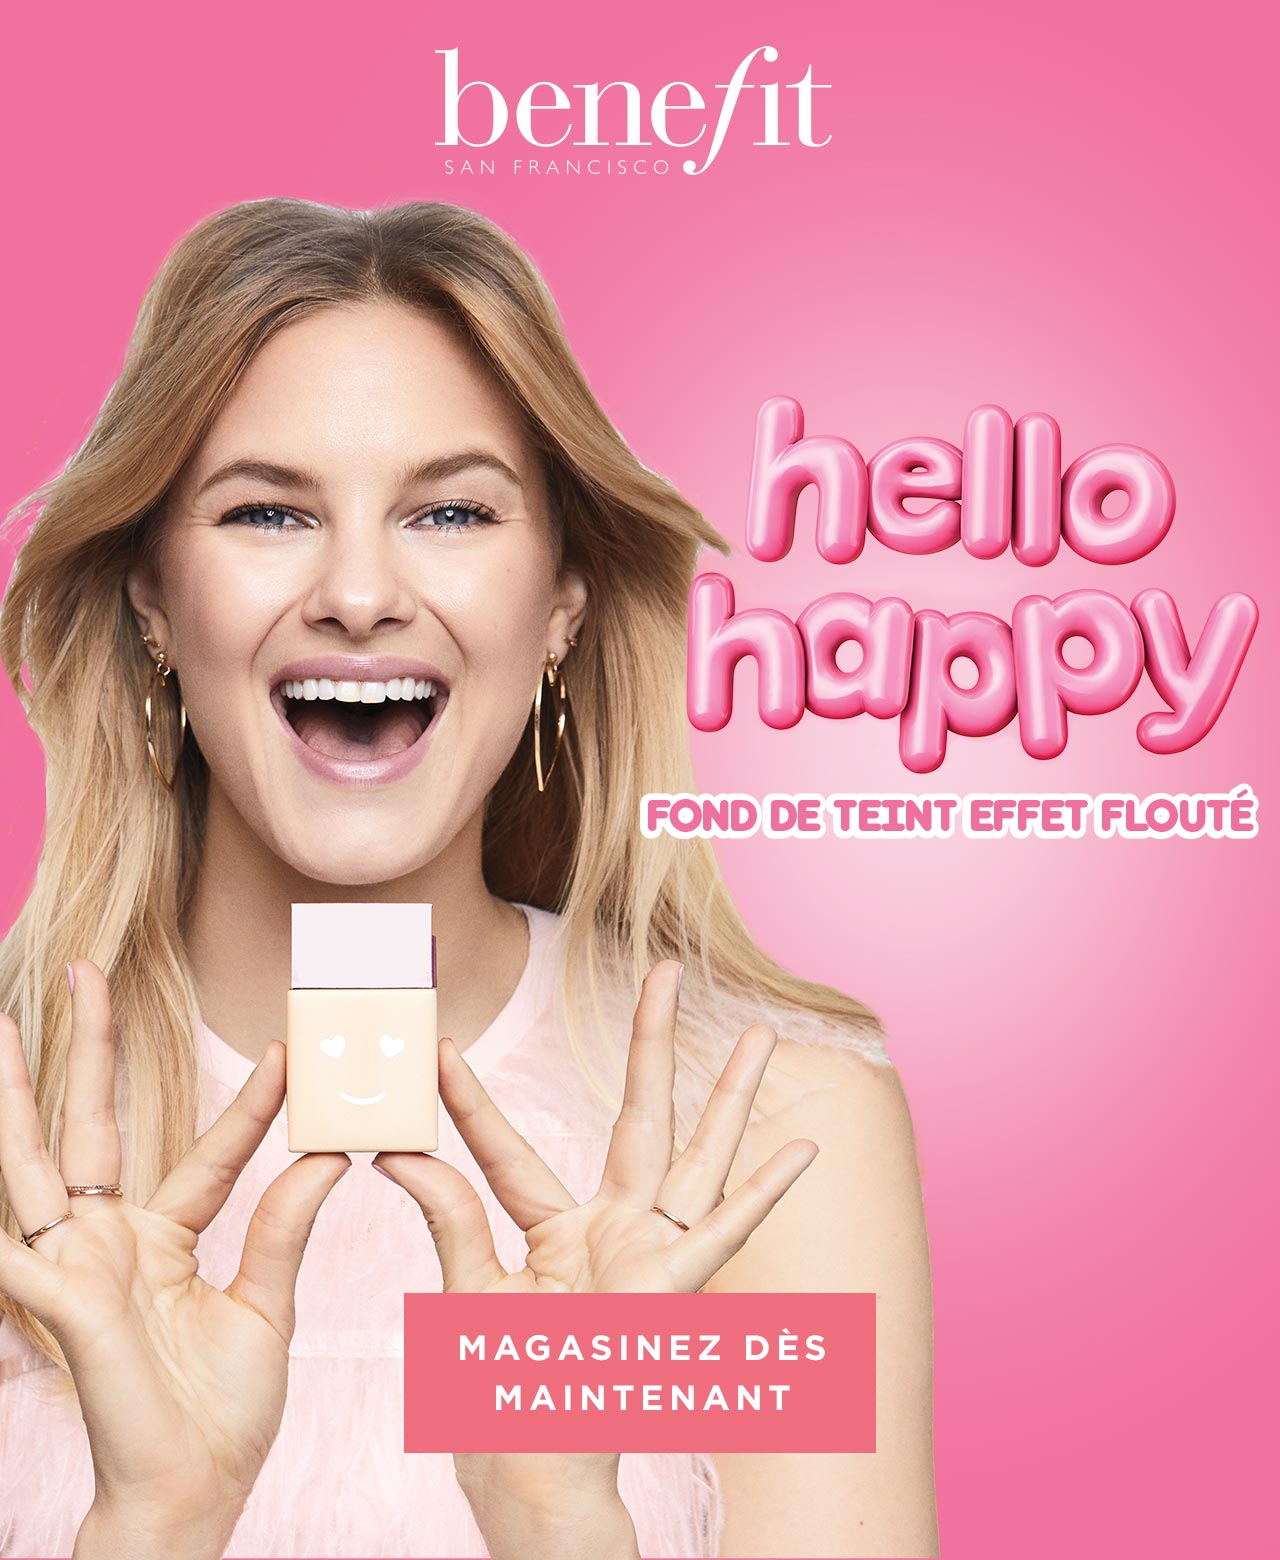 Benefit Hello Happy